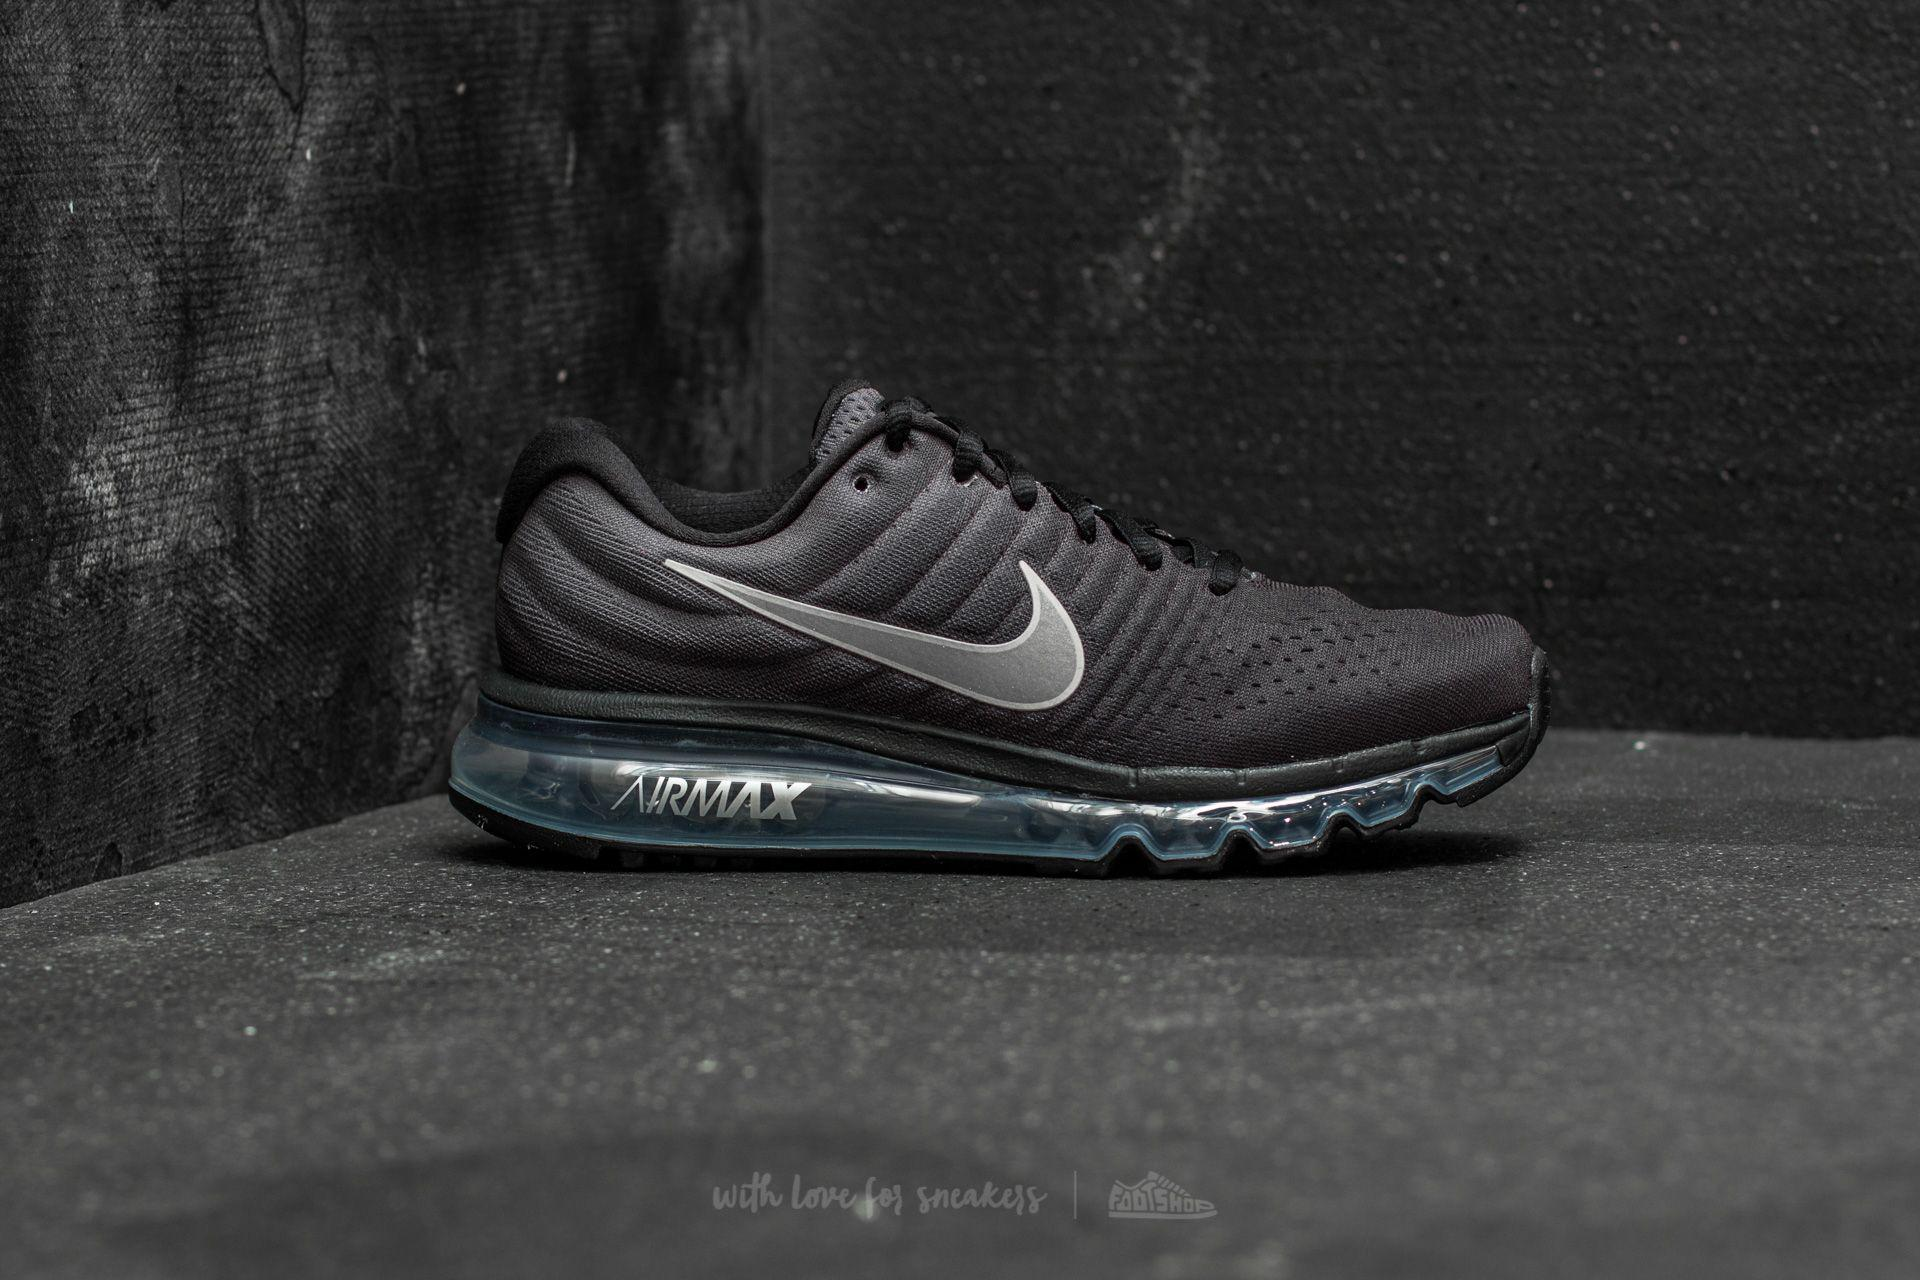 separation shoes 3967e f3cea Women's Air Max 2017 (gs) Black/ Summit White-anthracite